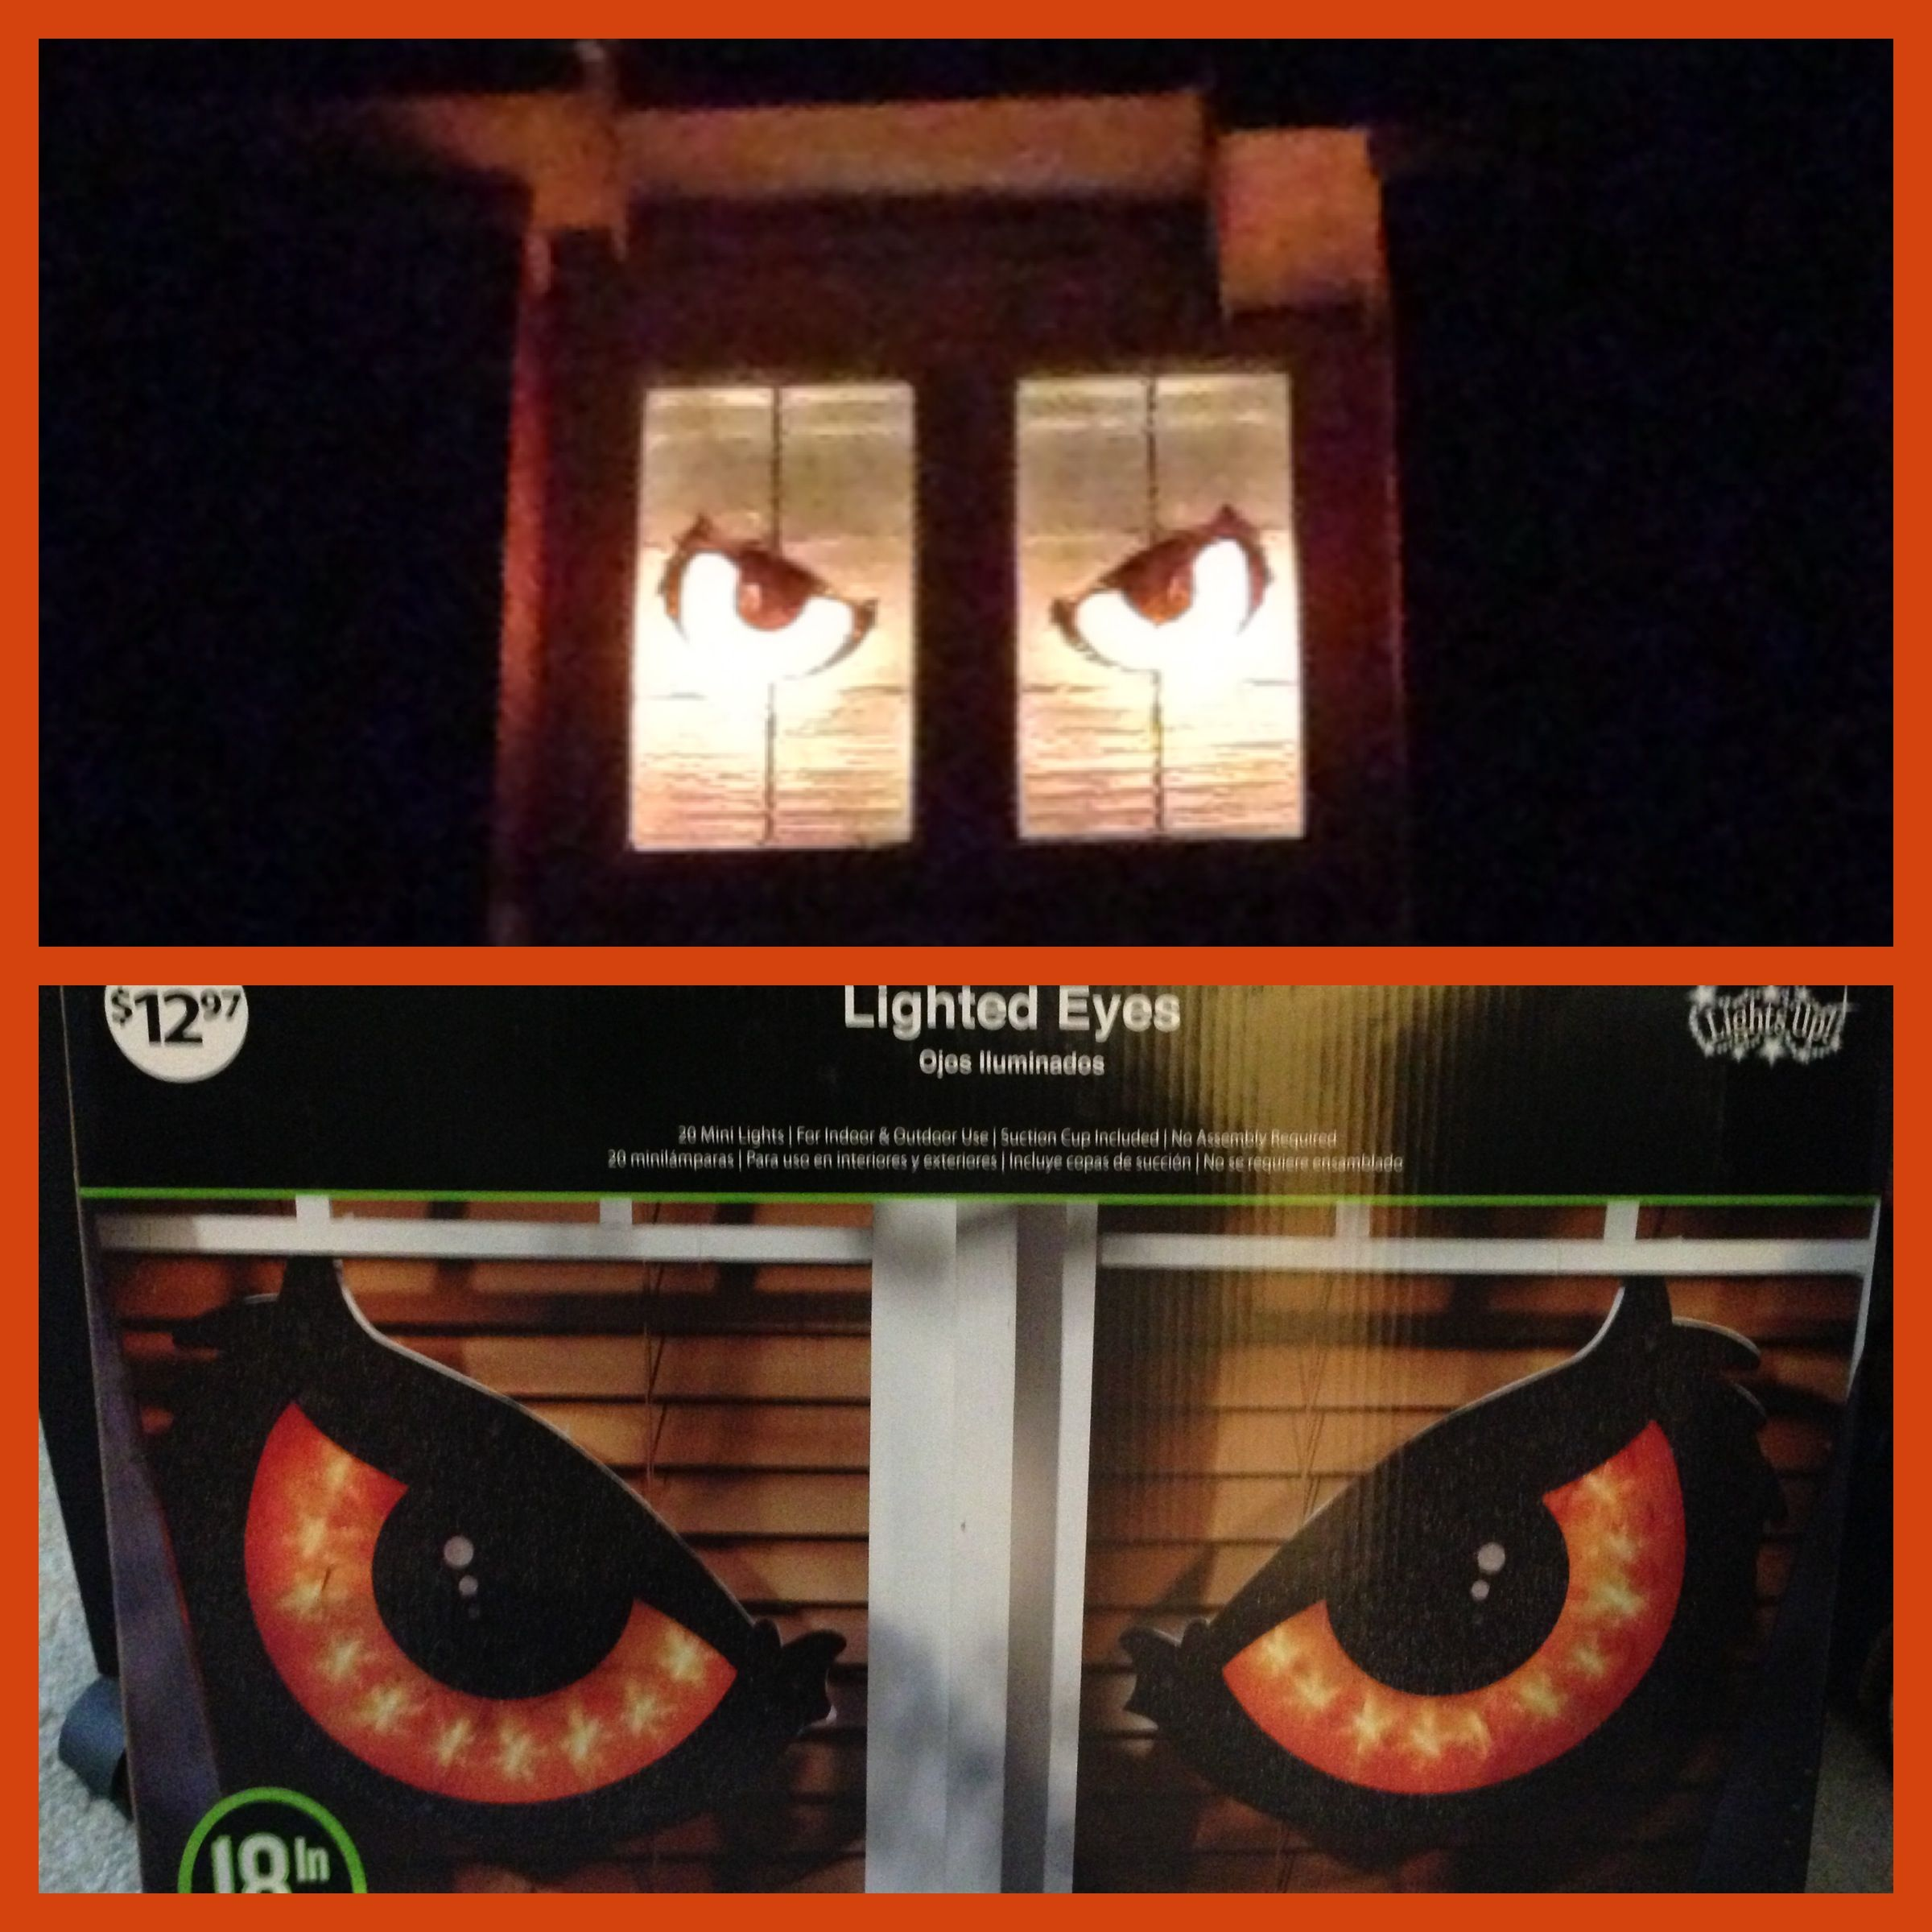 halloween decoration lighted eyes from walmart suction cup to window - Walmart Halloween Decorations